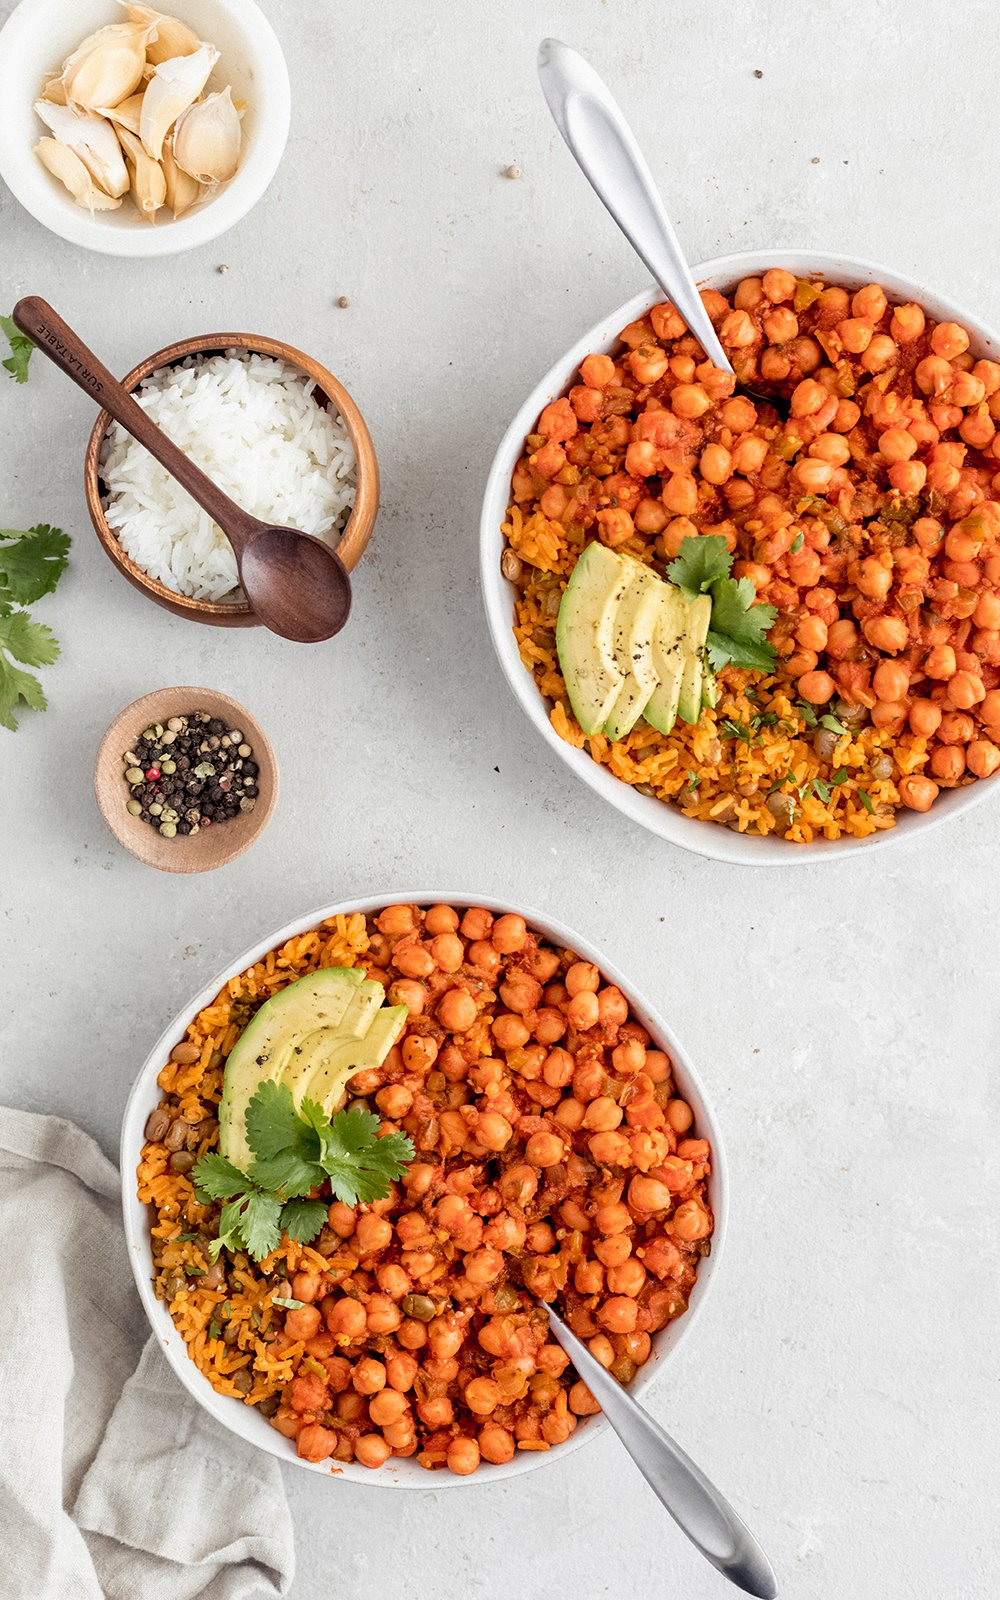 chickpeas in sofrito in two bowls next to three small dishes of spices